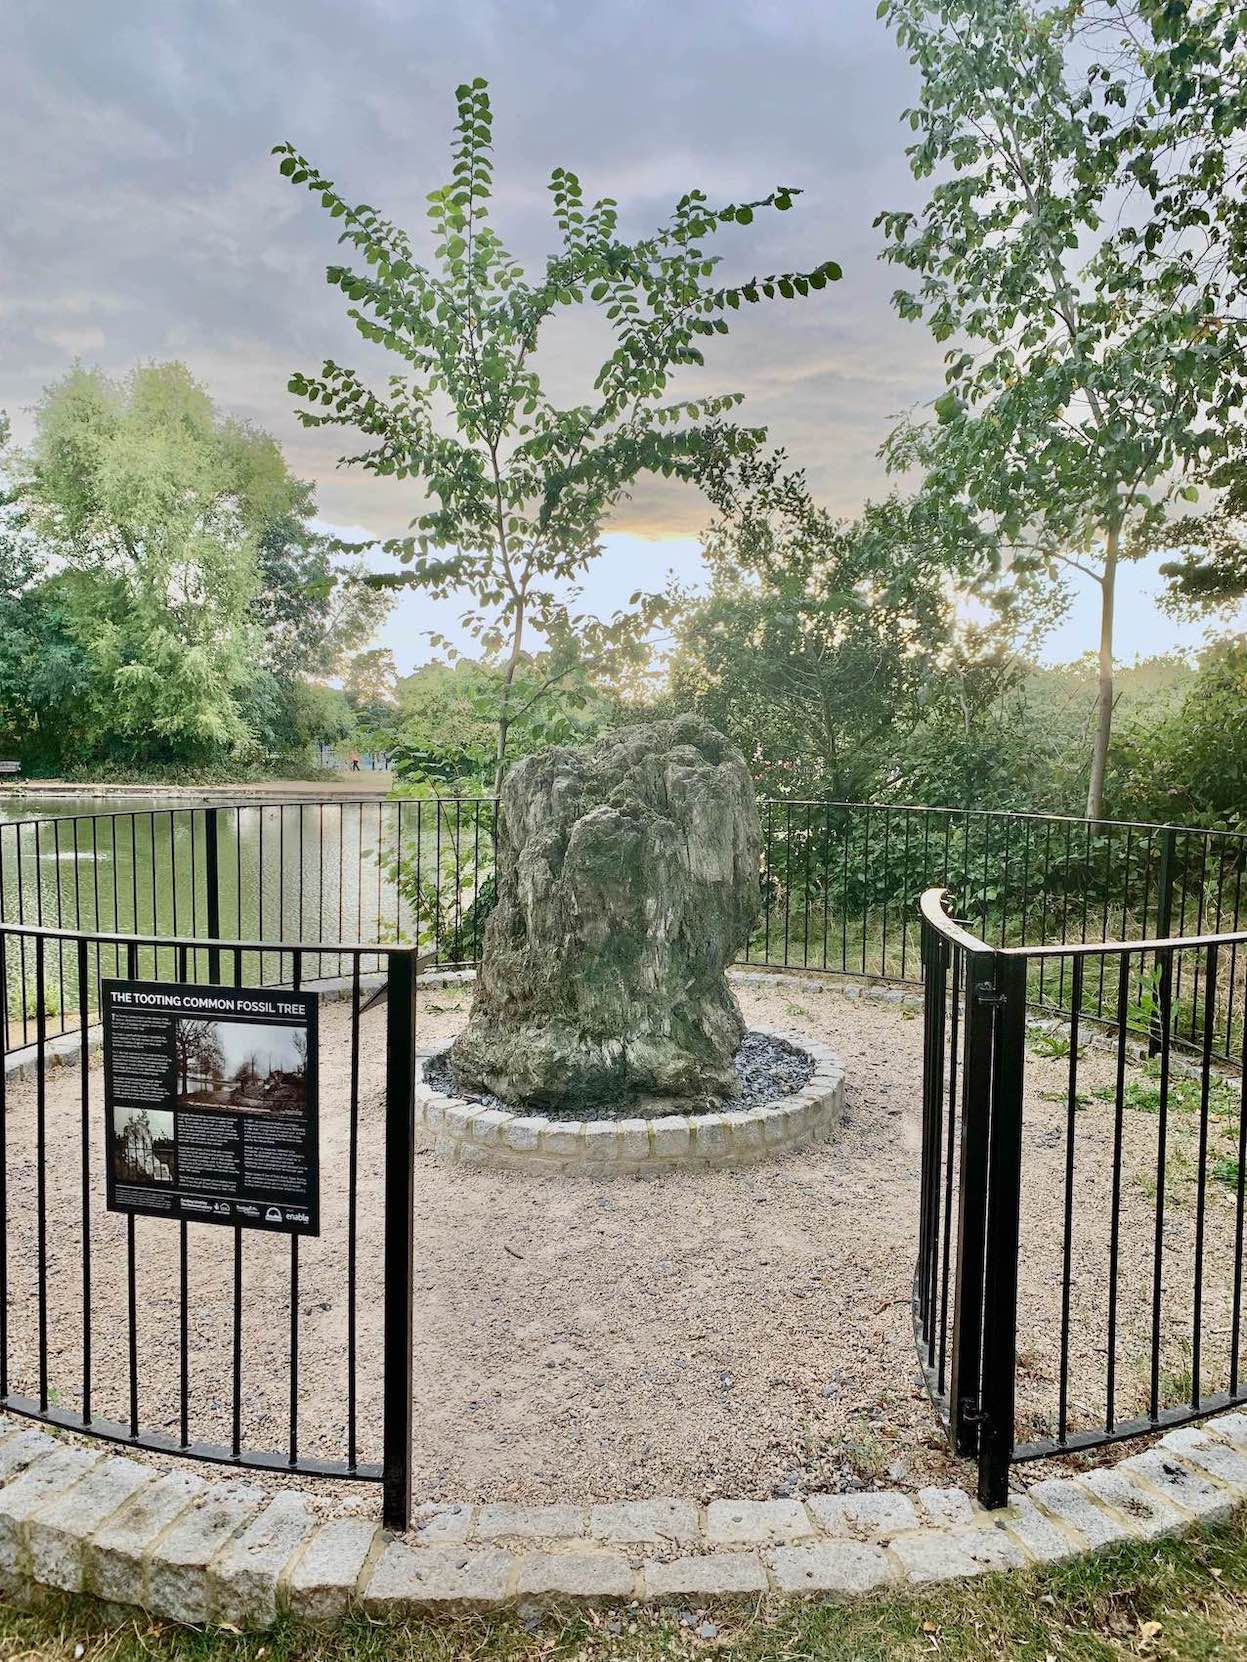 The Tooting Common Fossil Tree.